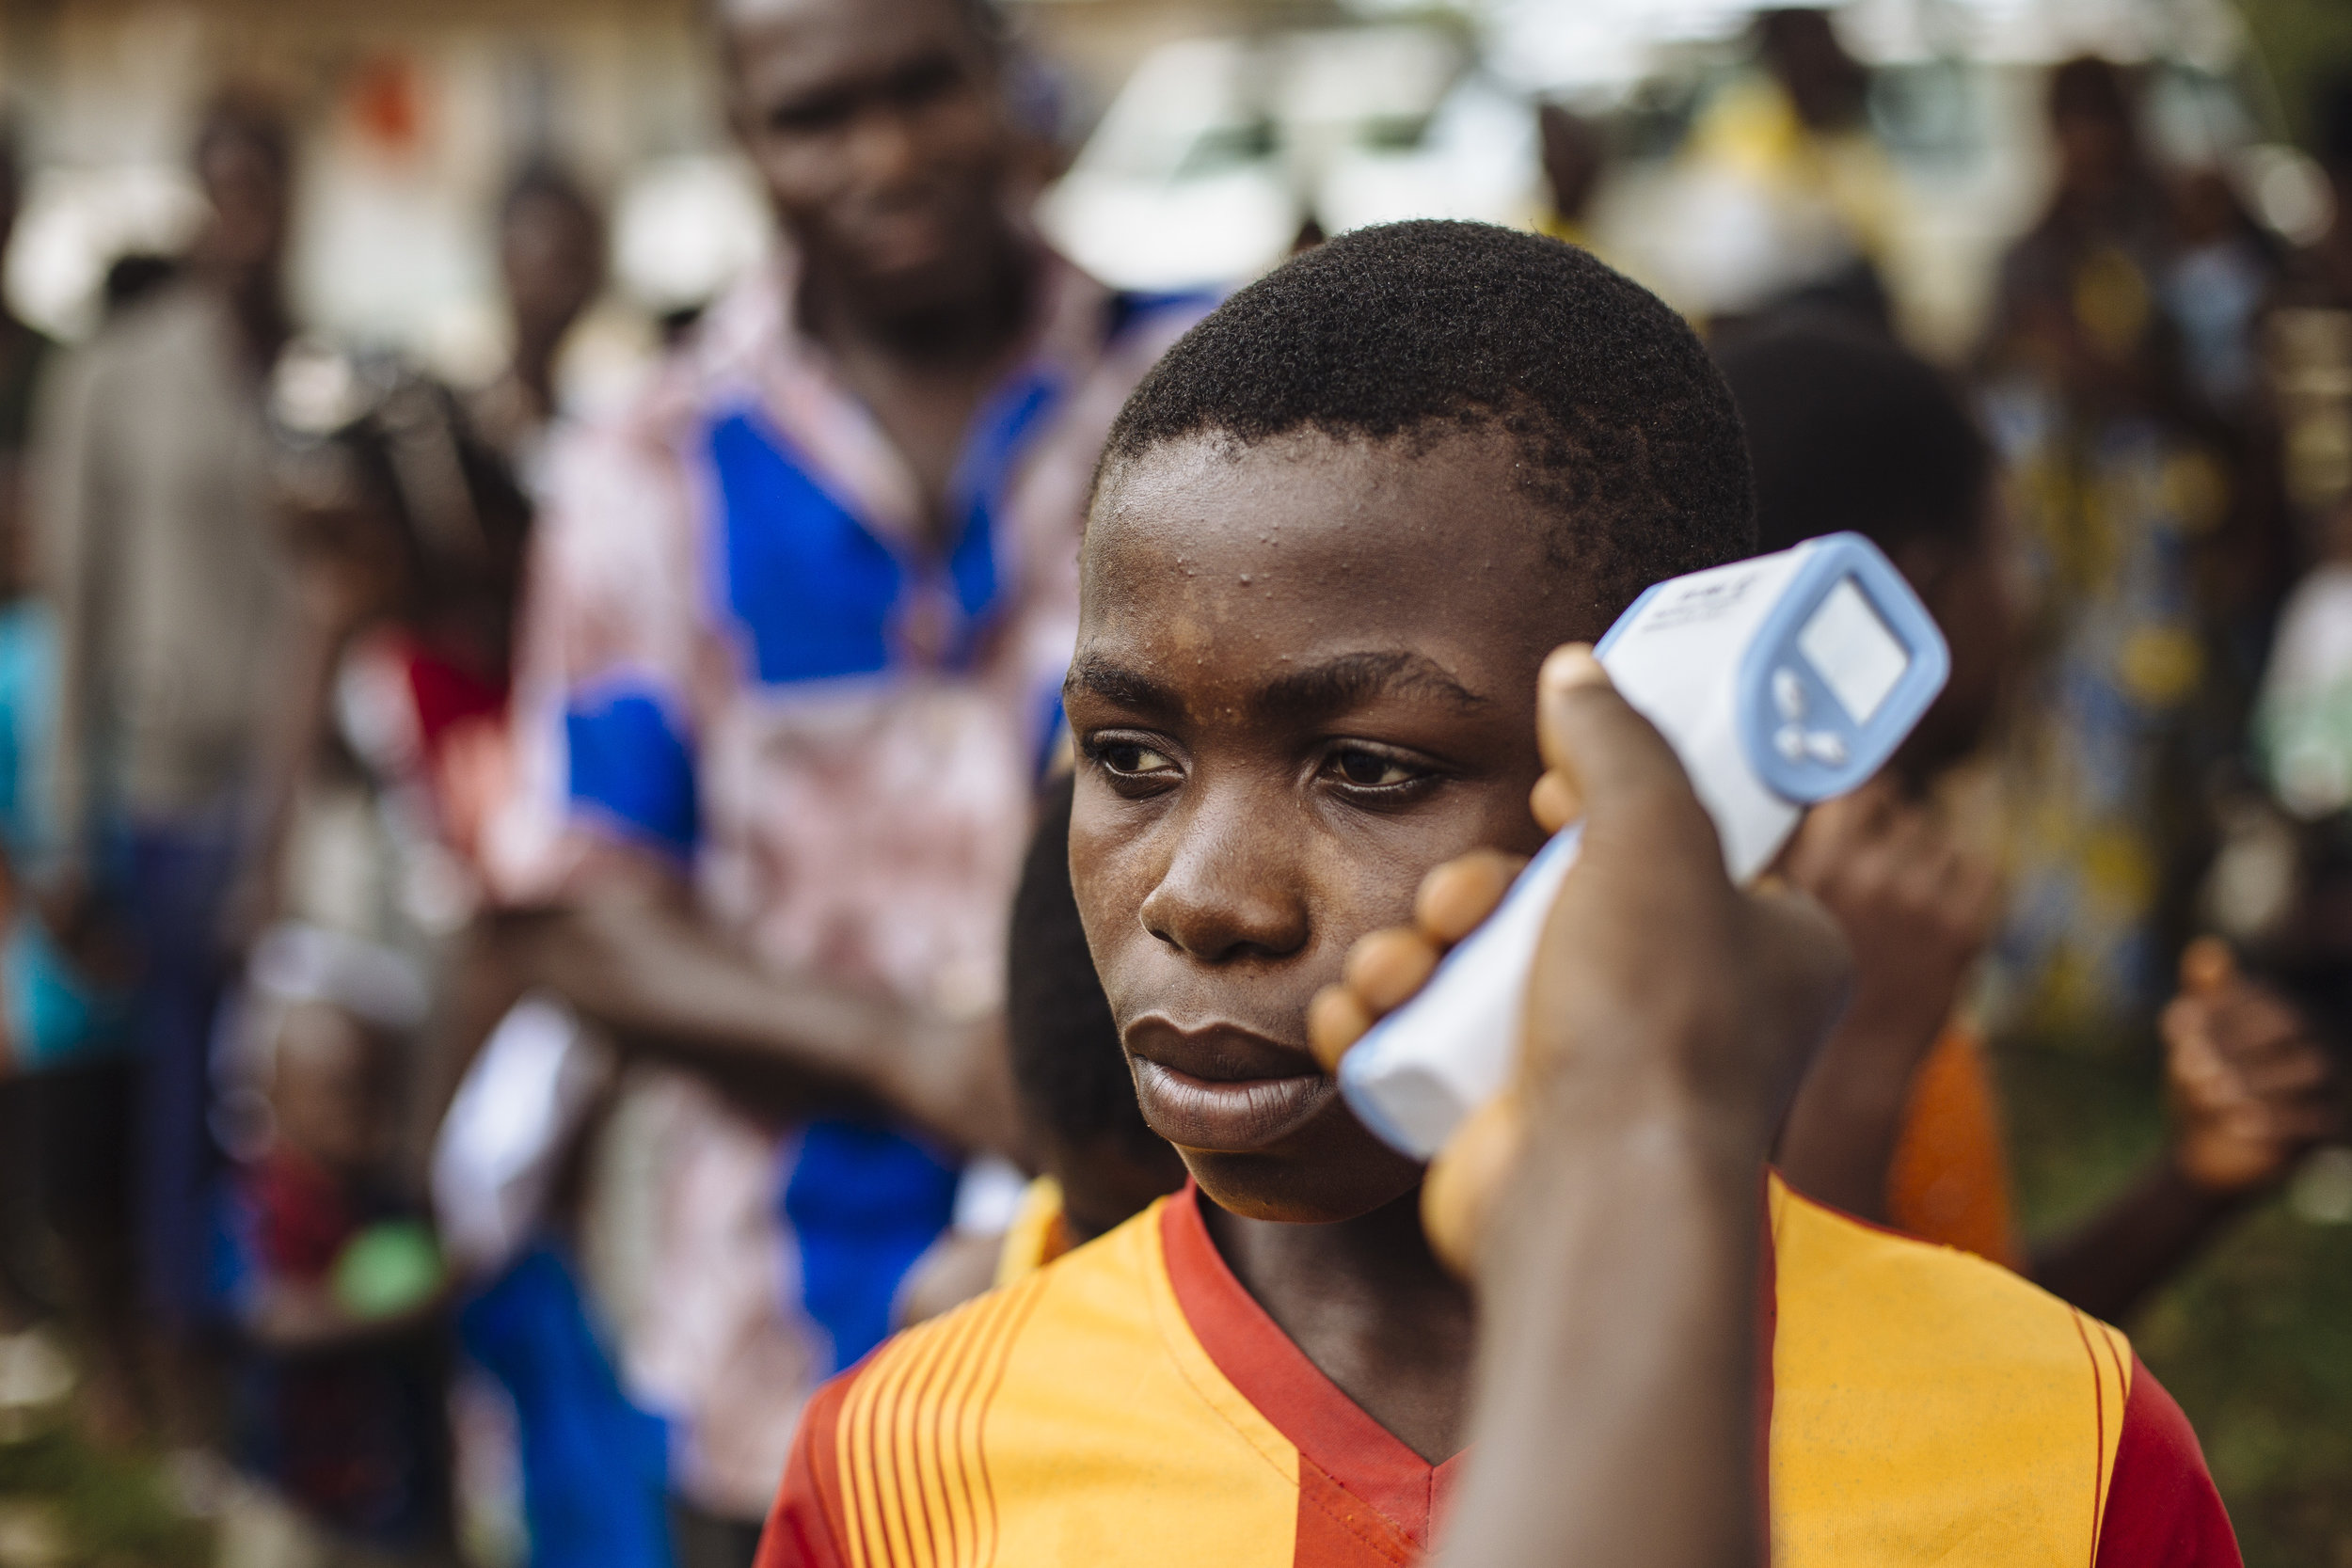 Deeke Toussaint Hie has his temperature recorded, part of efforts to prevent the transmission of the Ebola Virus Disease, at a border post near the Cavalla River, which demarcates the border with Côte d'Ivoire, in Maryland, Liberia.